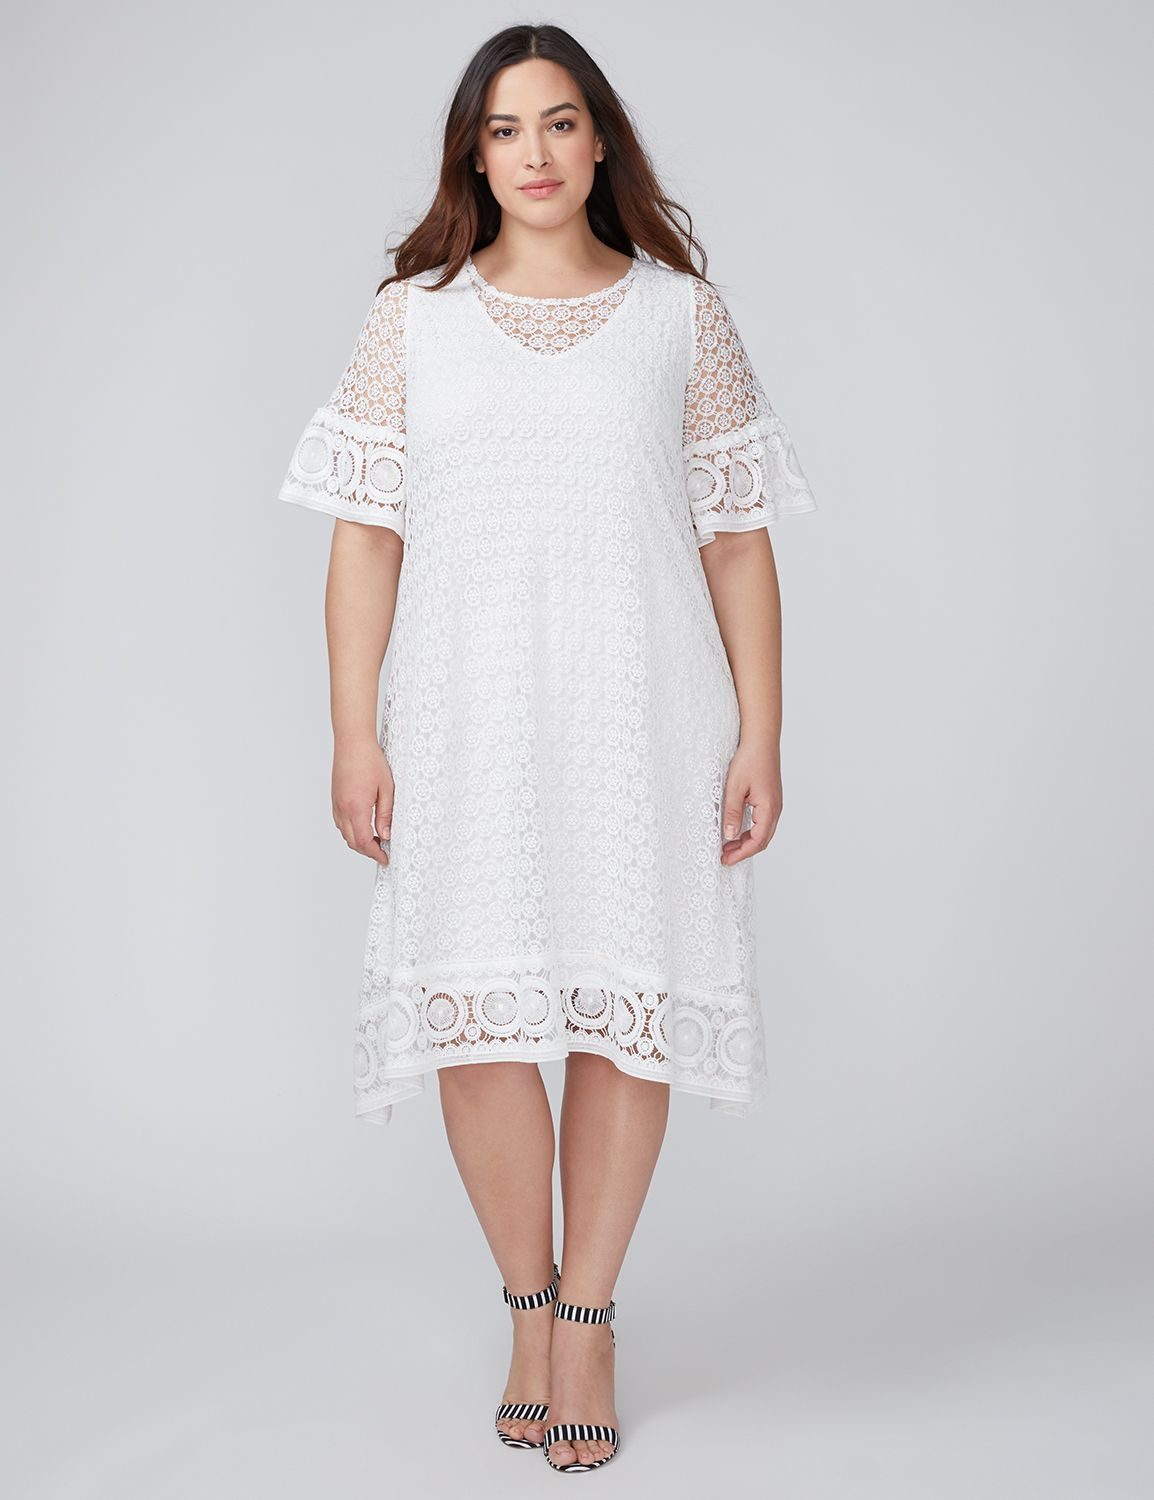 60s 70s Plus Size Dresses, Clothing, Costumes Lane Bryant Womens Crochet Swing Dress 12 White $73.99 AT vintagedancer.com